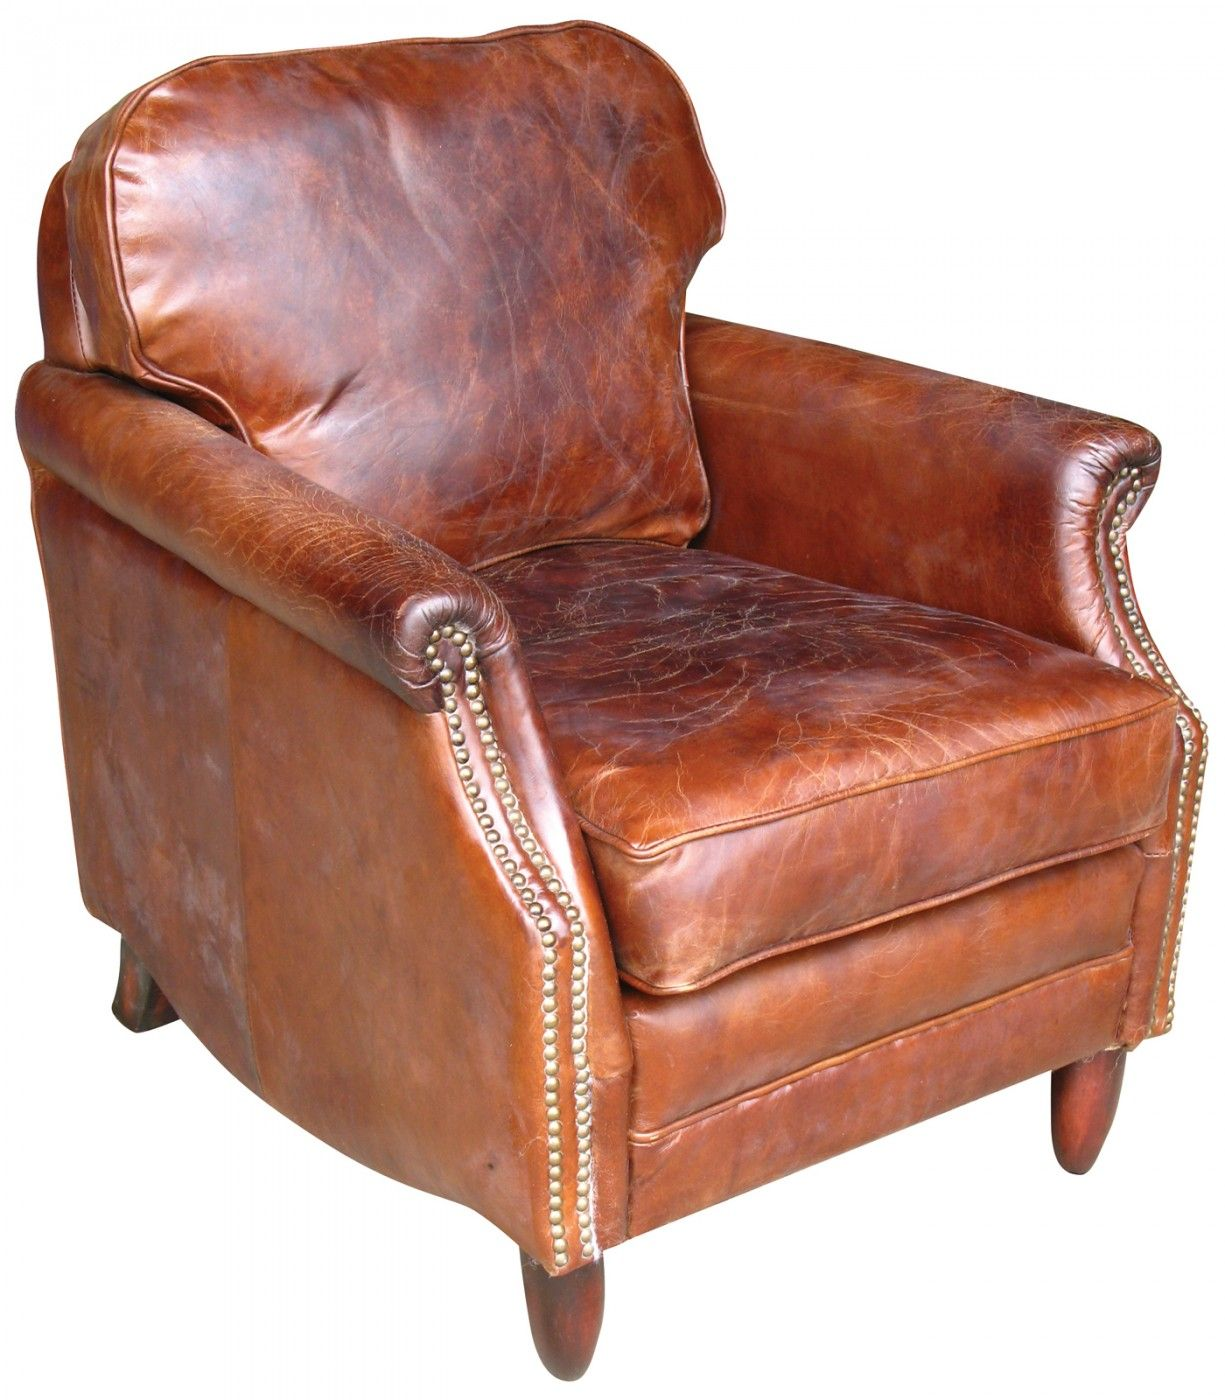 Genova arm chair   Accent chairs for sale, Occasional ...